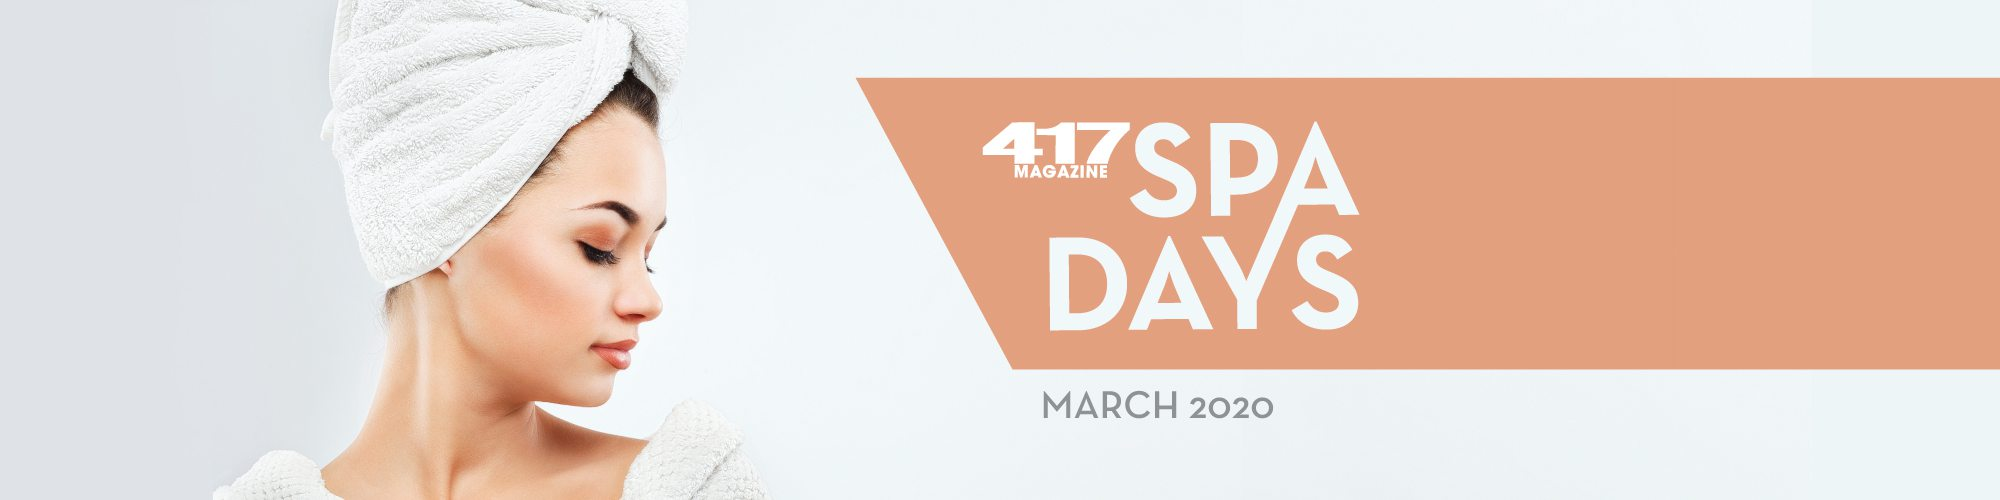 417 Magazine's Spa Days 2020